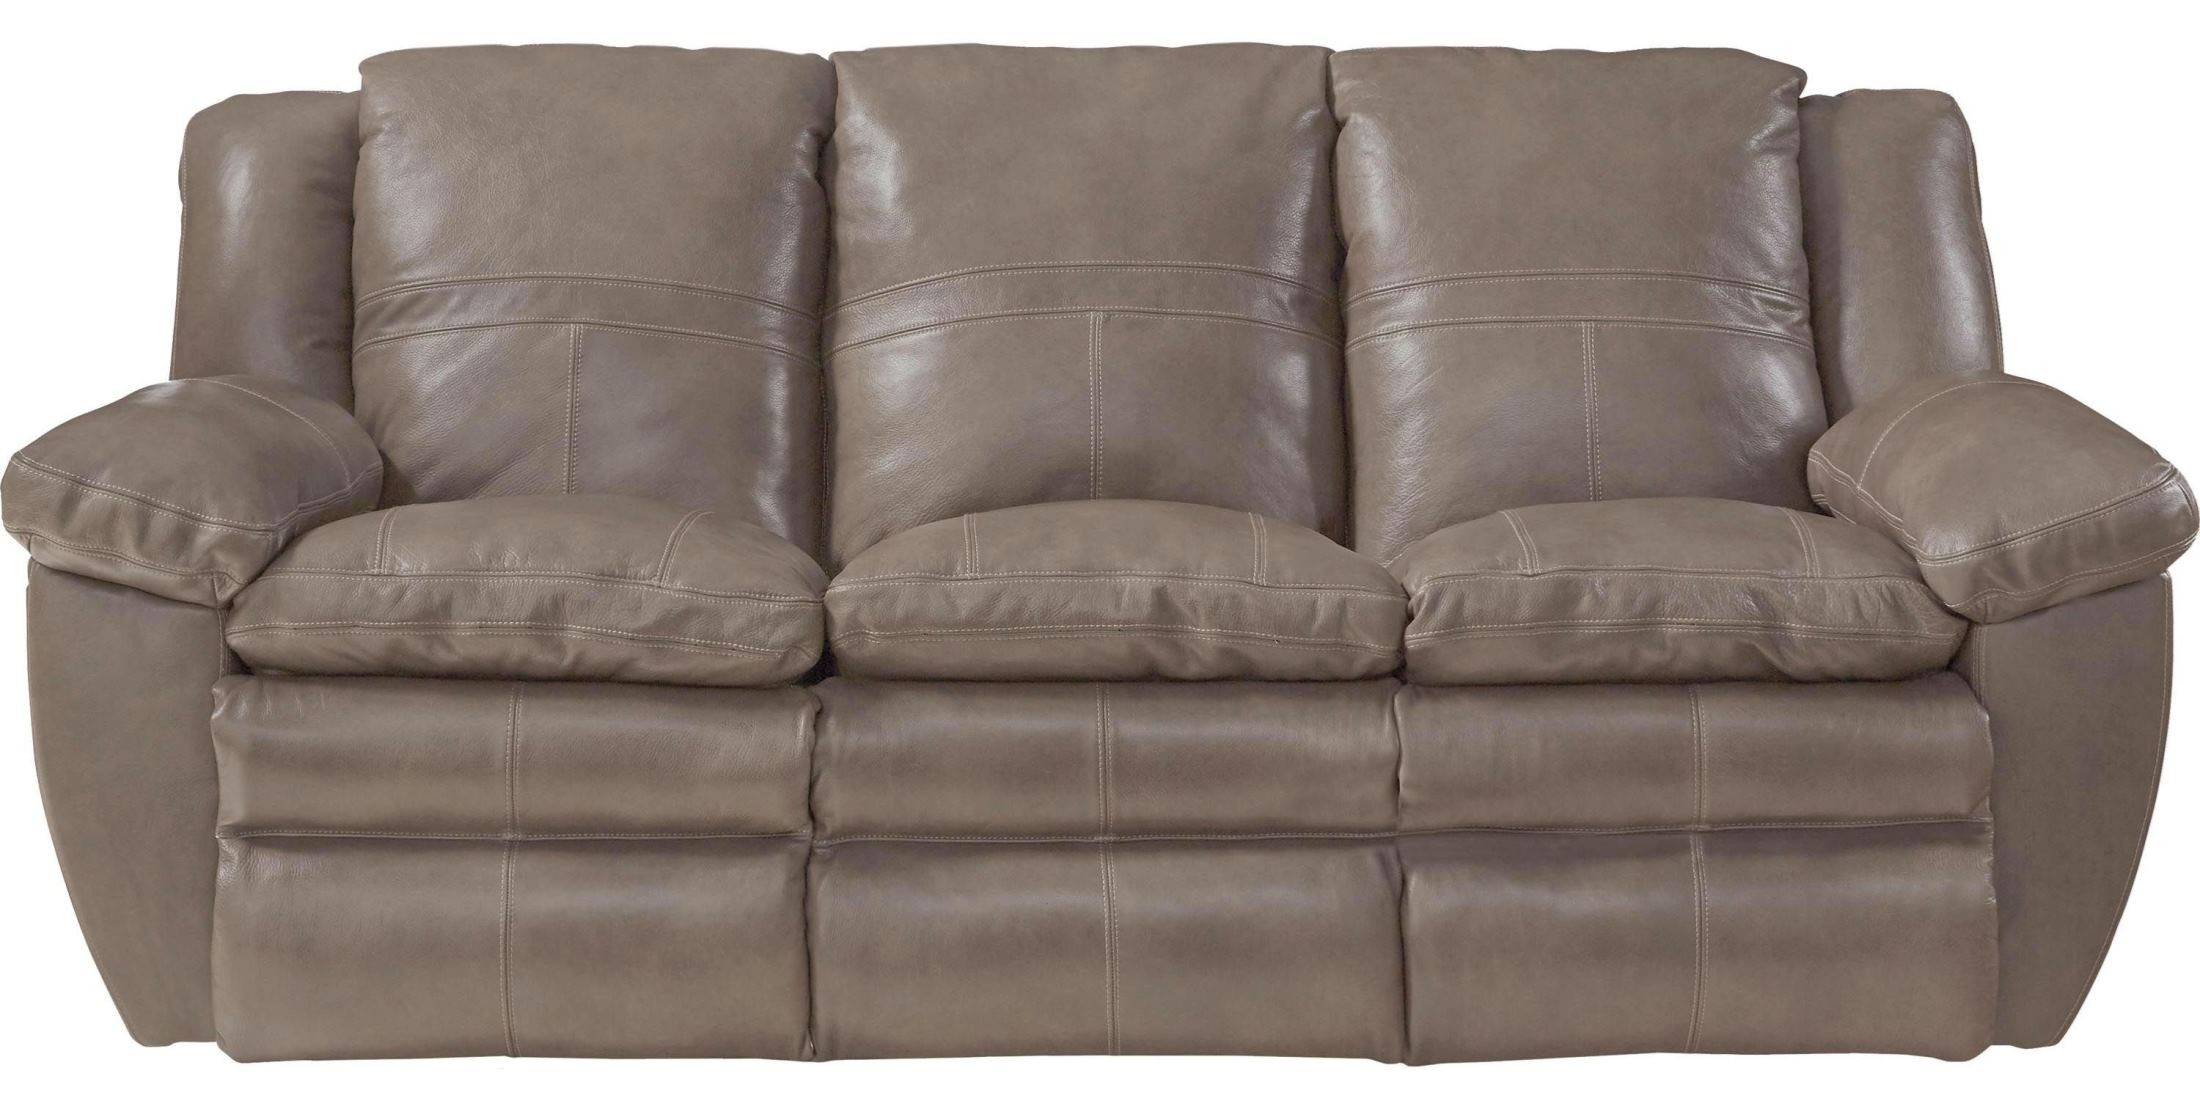 Aria smoke lay flat reclining sofa from catnapper for Catnapper cloud nine chaise recliner